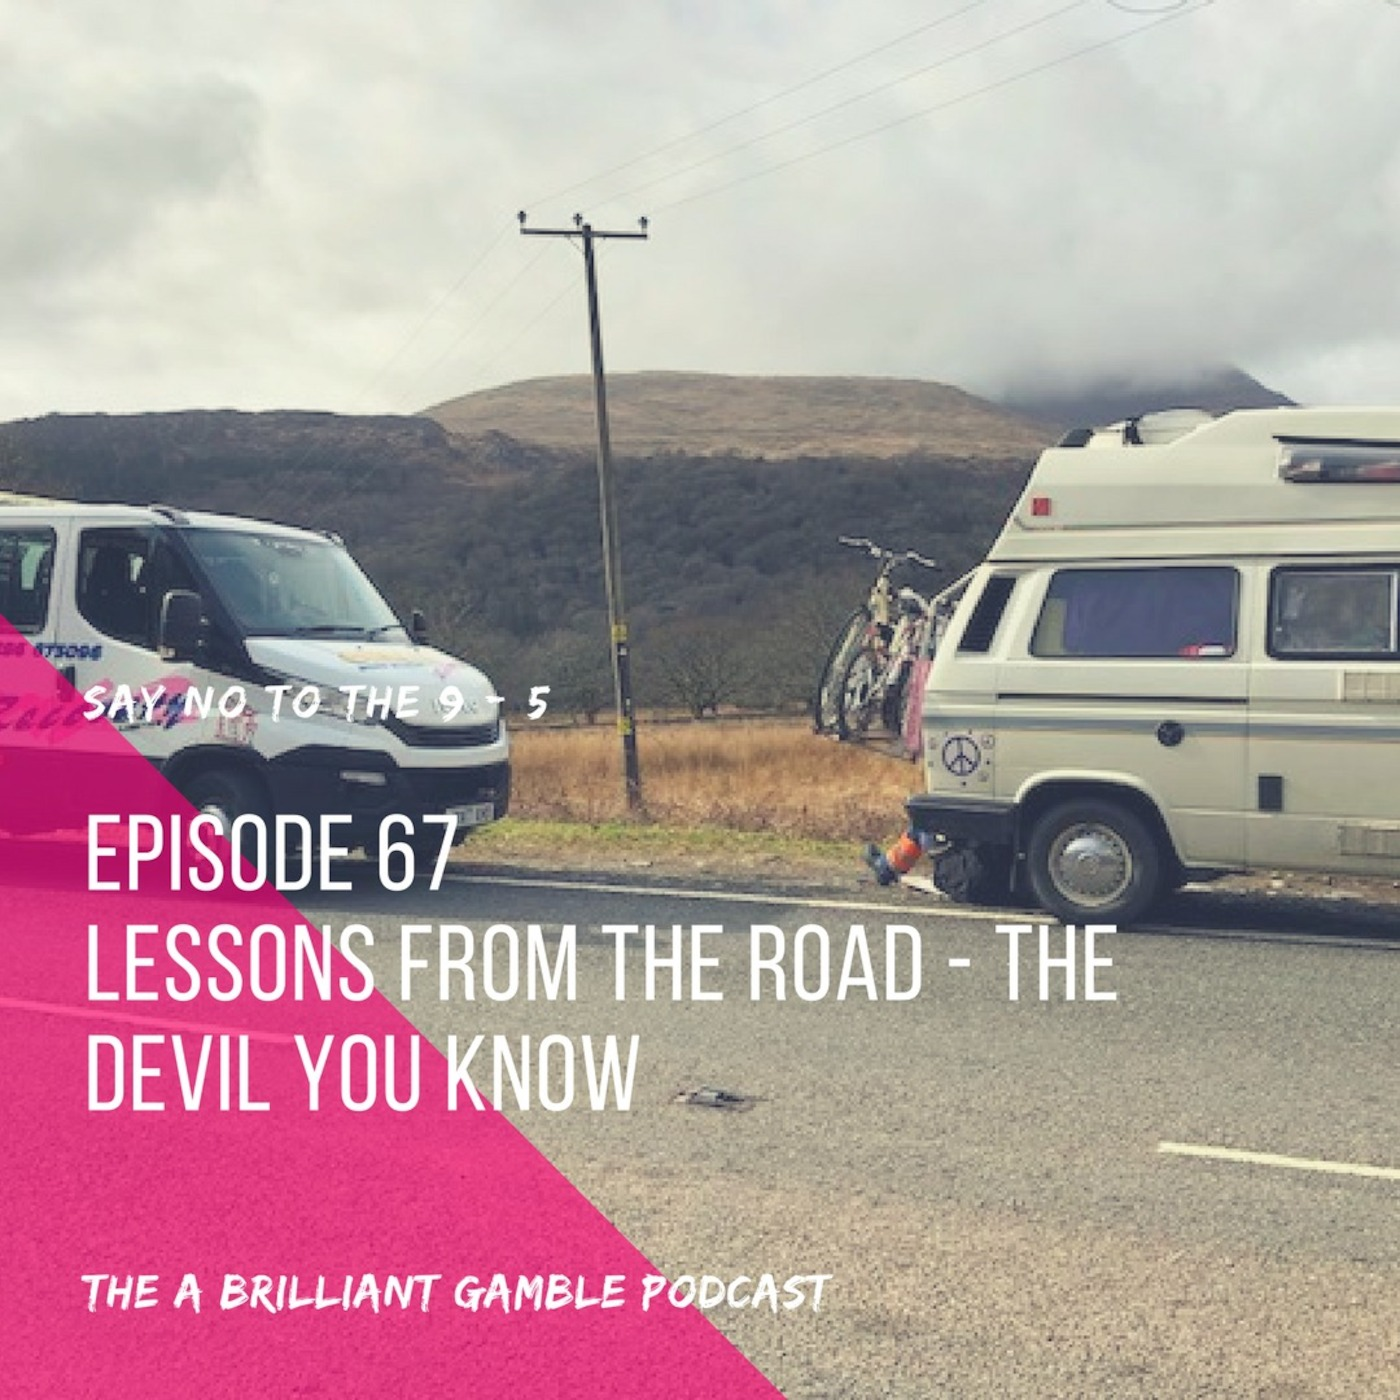 Episode 67: Lessons from the road - The Devil You Know